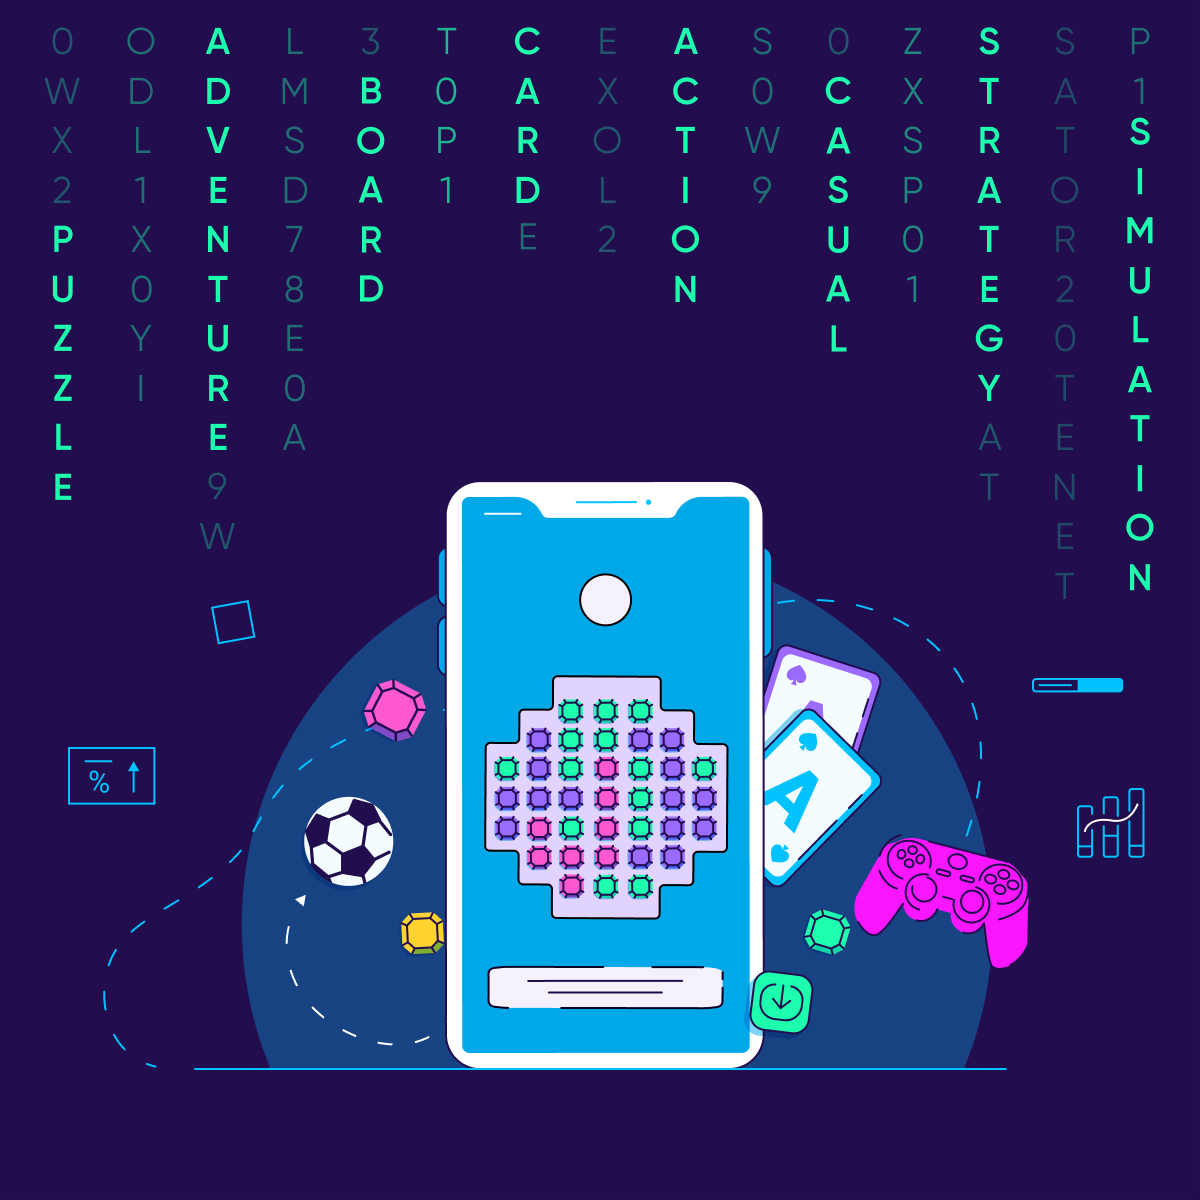 mobile gaming genre affinity - Square